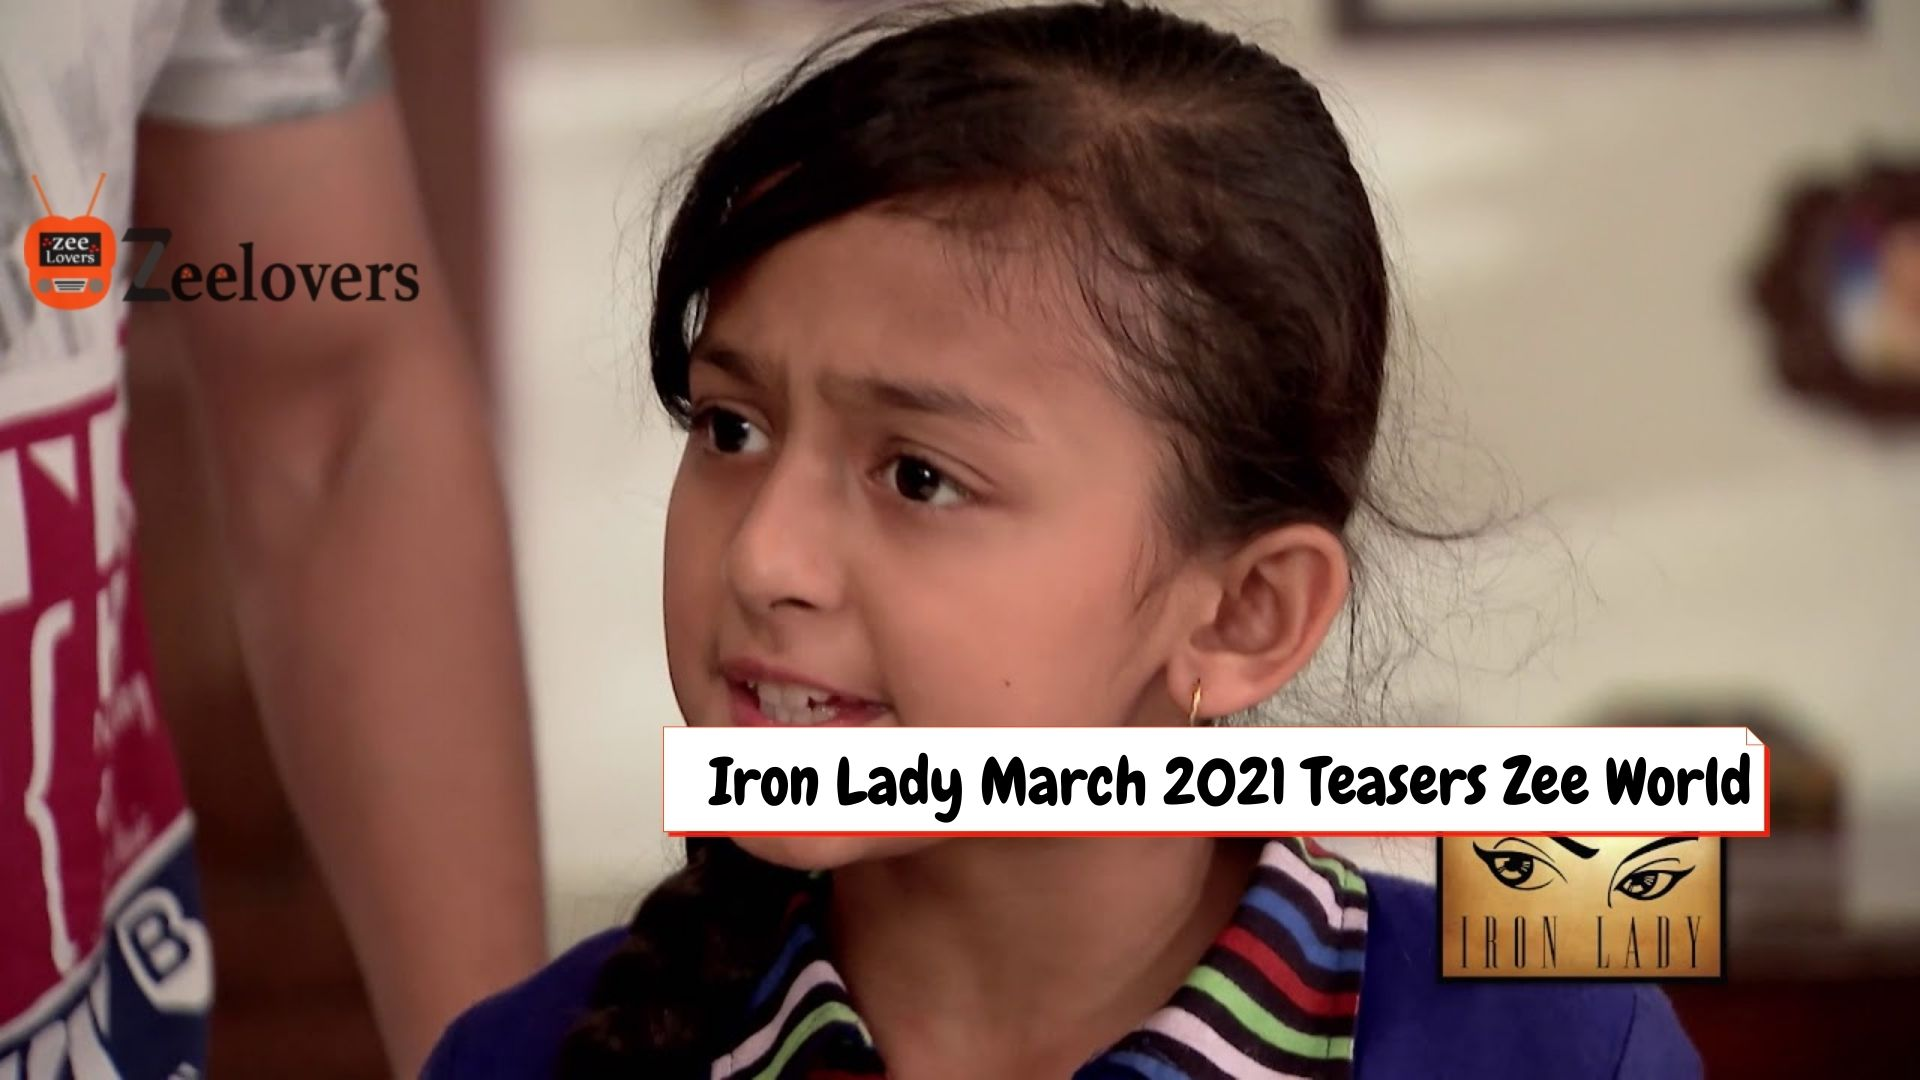 Iron Lady Teasers March 2021 On Zee world